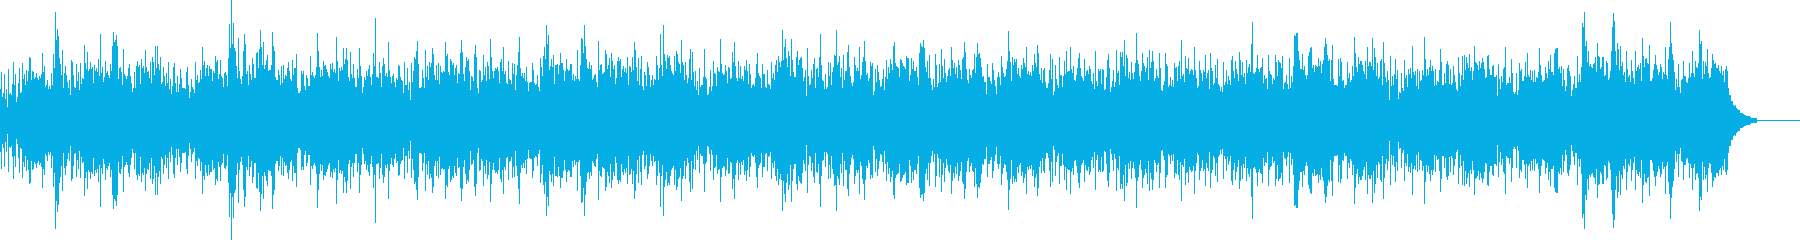 Melody with a pleasant sound's reproduced waveform